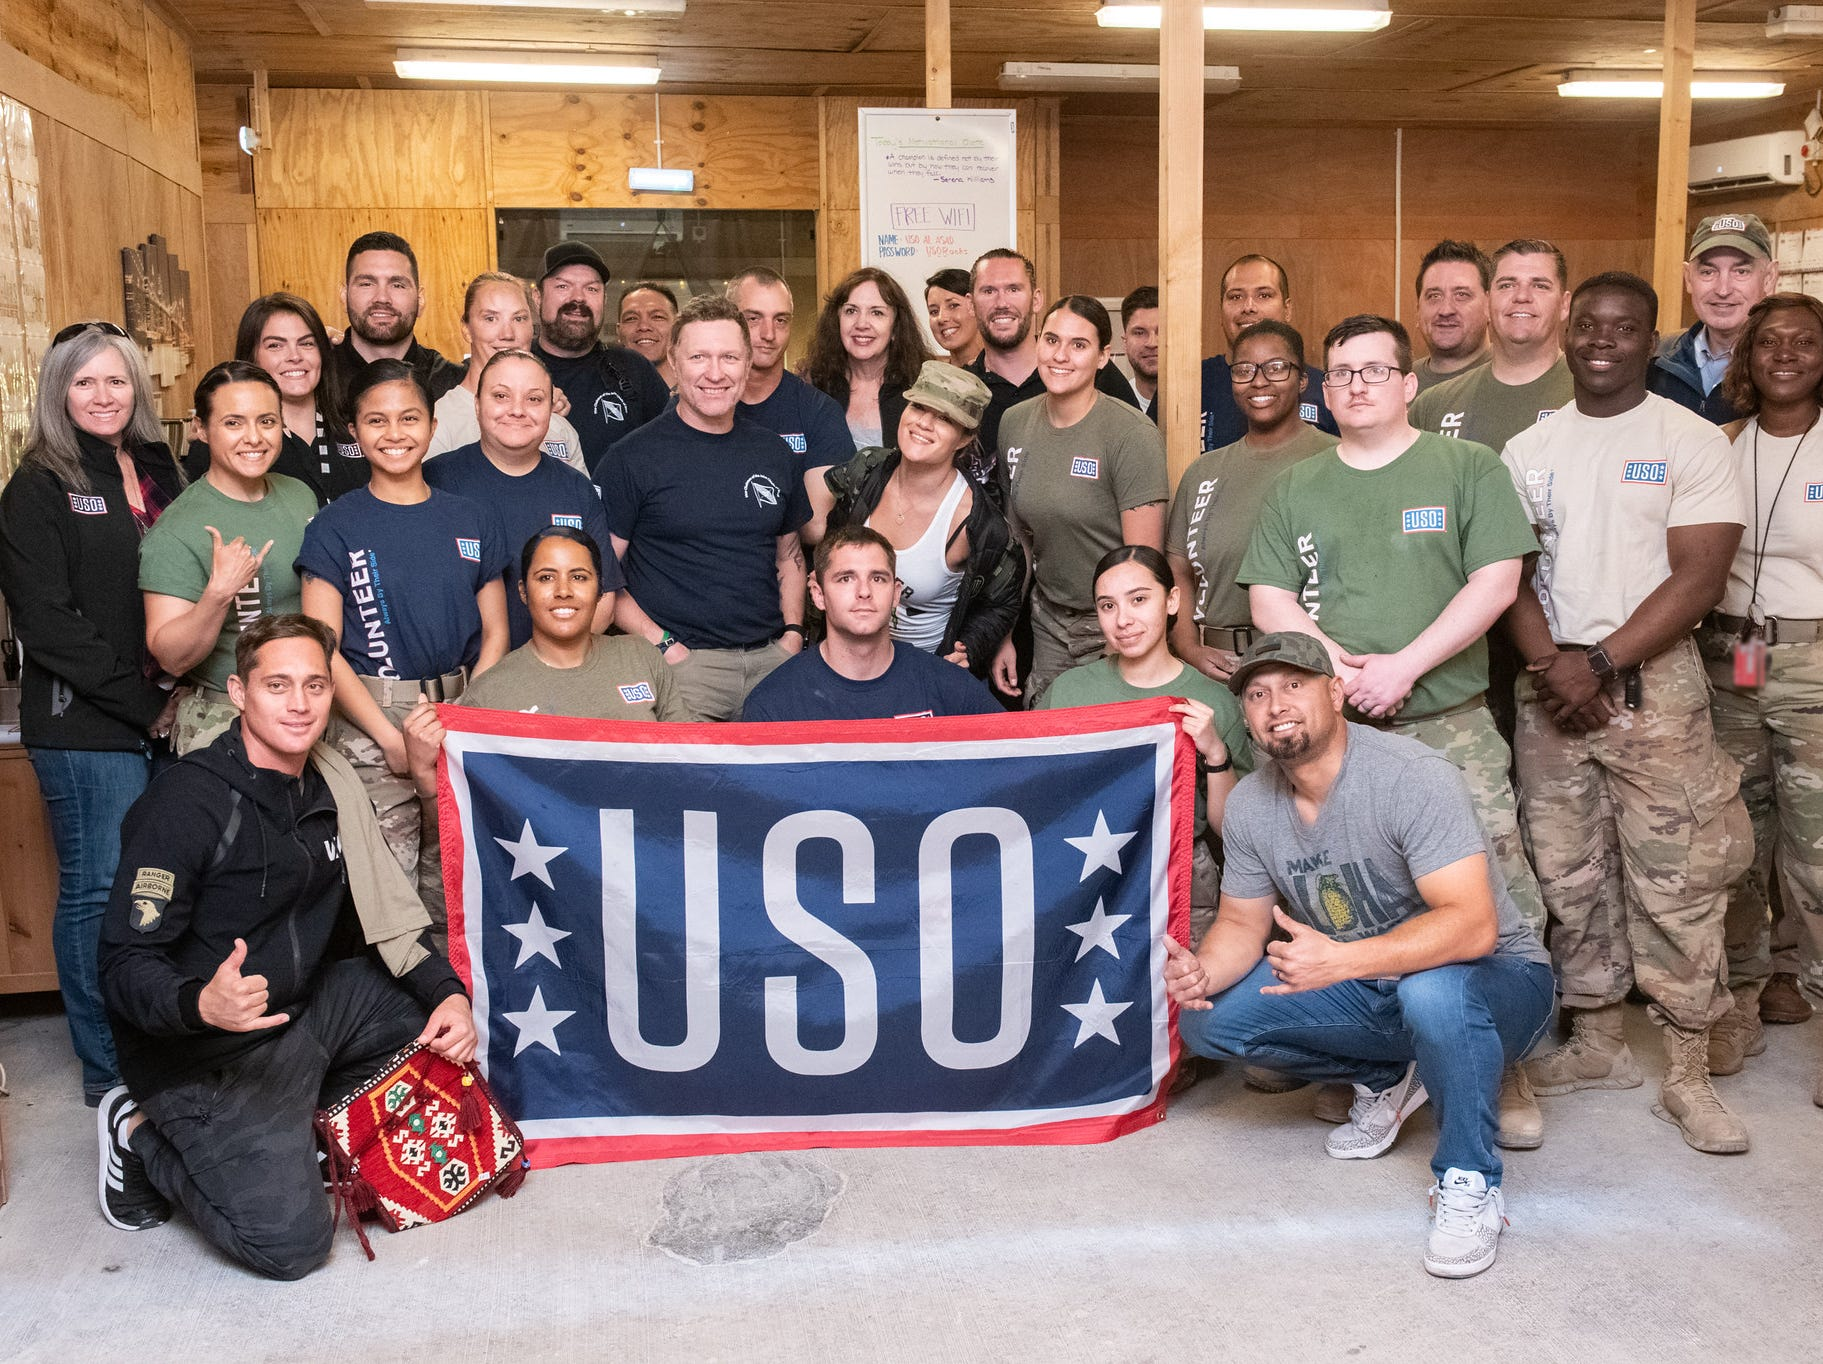 Entertainers and athletes take questions and interact with the audience during a USO Show at Al Asad Airbase, Iraq; the sixth stop on the annual Vice Chairman's USO Tour, April 2, 2019. Country music artist Craig Morgan, celebrity chef Robert Irvine, UFC Hall of Famer BJ Penn, former UFC Middleweight champion Chris Weidman, professional mixed martial artist Felice Herrig, two-time MLB World Series champion Shane Victorino; and professional surfer Makua Rothman joined Air Force Gen. Paul J. Selva, vice chairman of the Joint Chiefs of Staff, on a tour across the world as they visit service members overseas to thank them for their service and sacrifice. (DoD Photo by U.S. Army Sgt. James K. McCann)